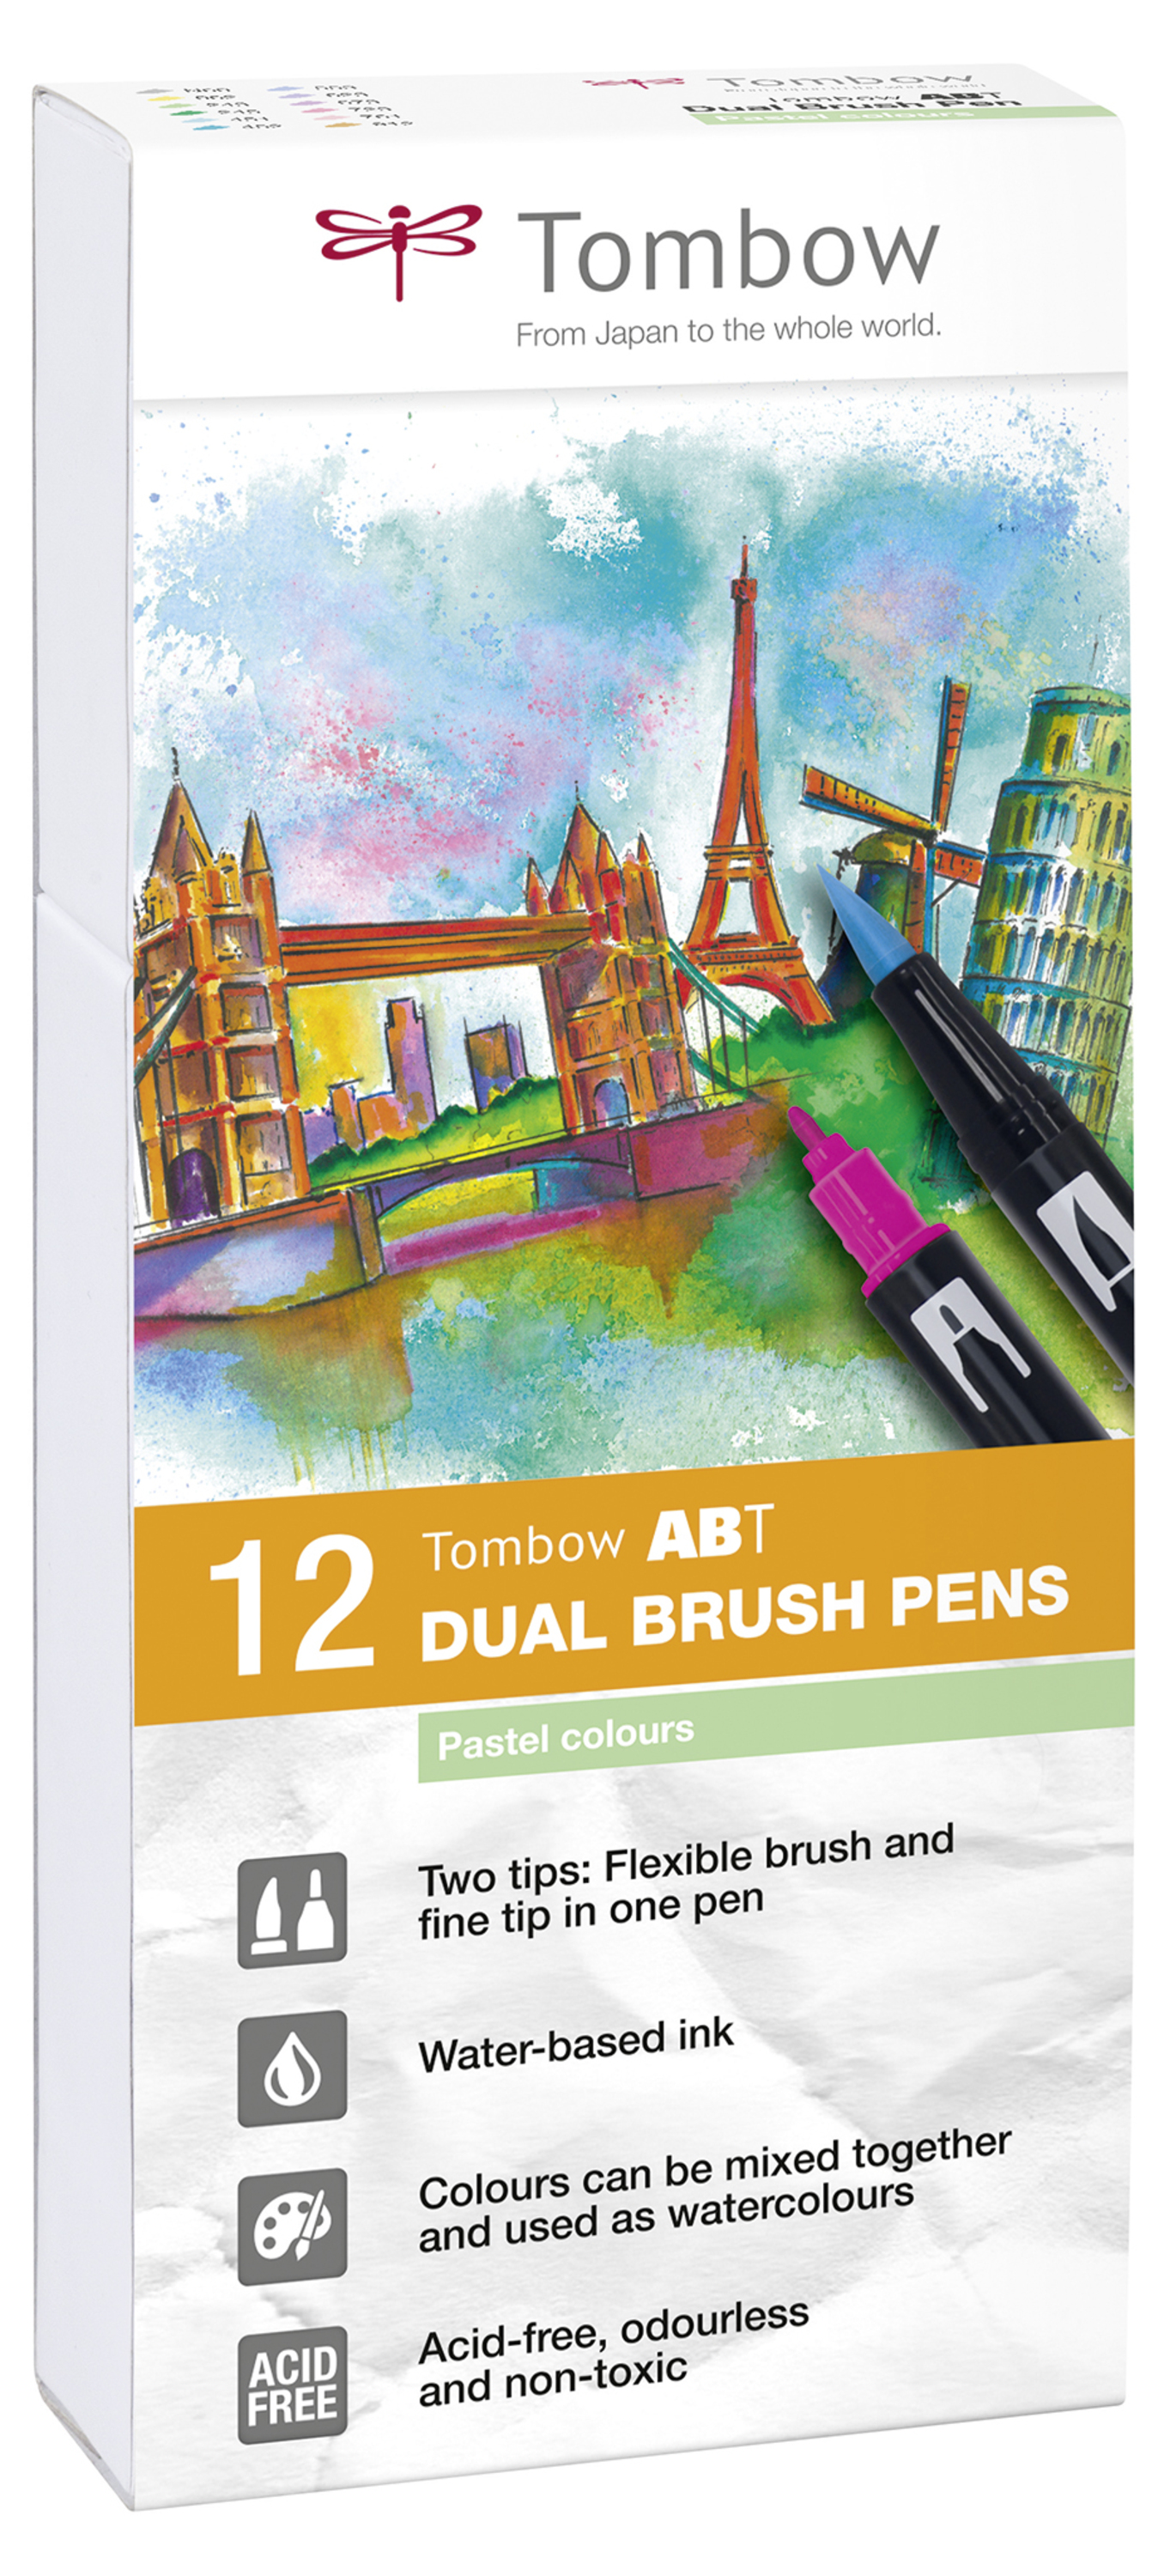 Tombow ABT Dual Brush Pen 2 tips Pastel Colours PK12